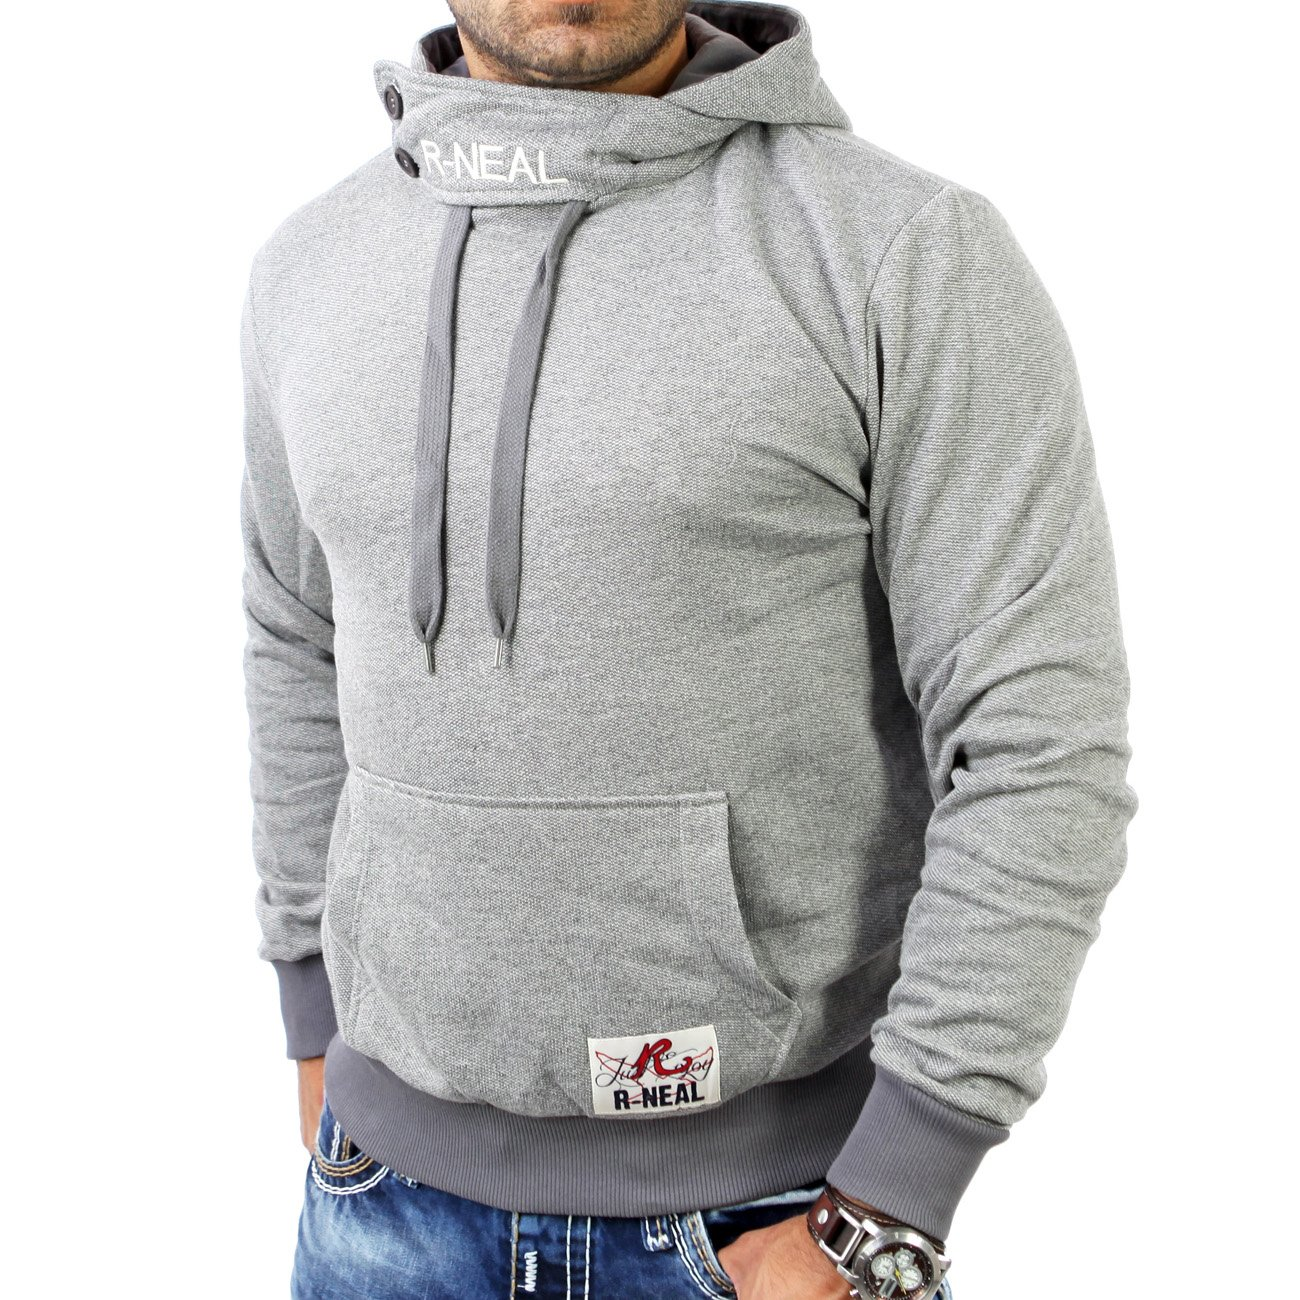 Abercrombie & Fitch hoodies and sweatshirts are made to be the softest, most comfortable you'll ever wear. Crafted with high-quality materials, each style is designed with the utmost attention to detail for a truly heritage look that will stand the test of time.